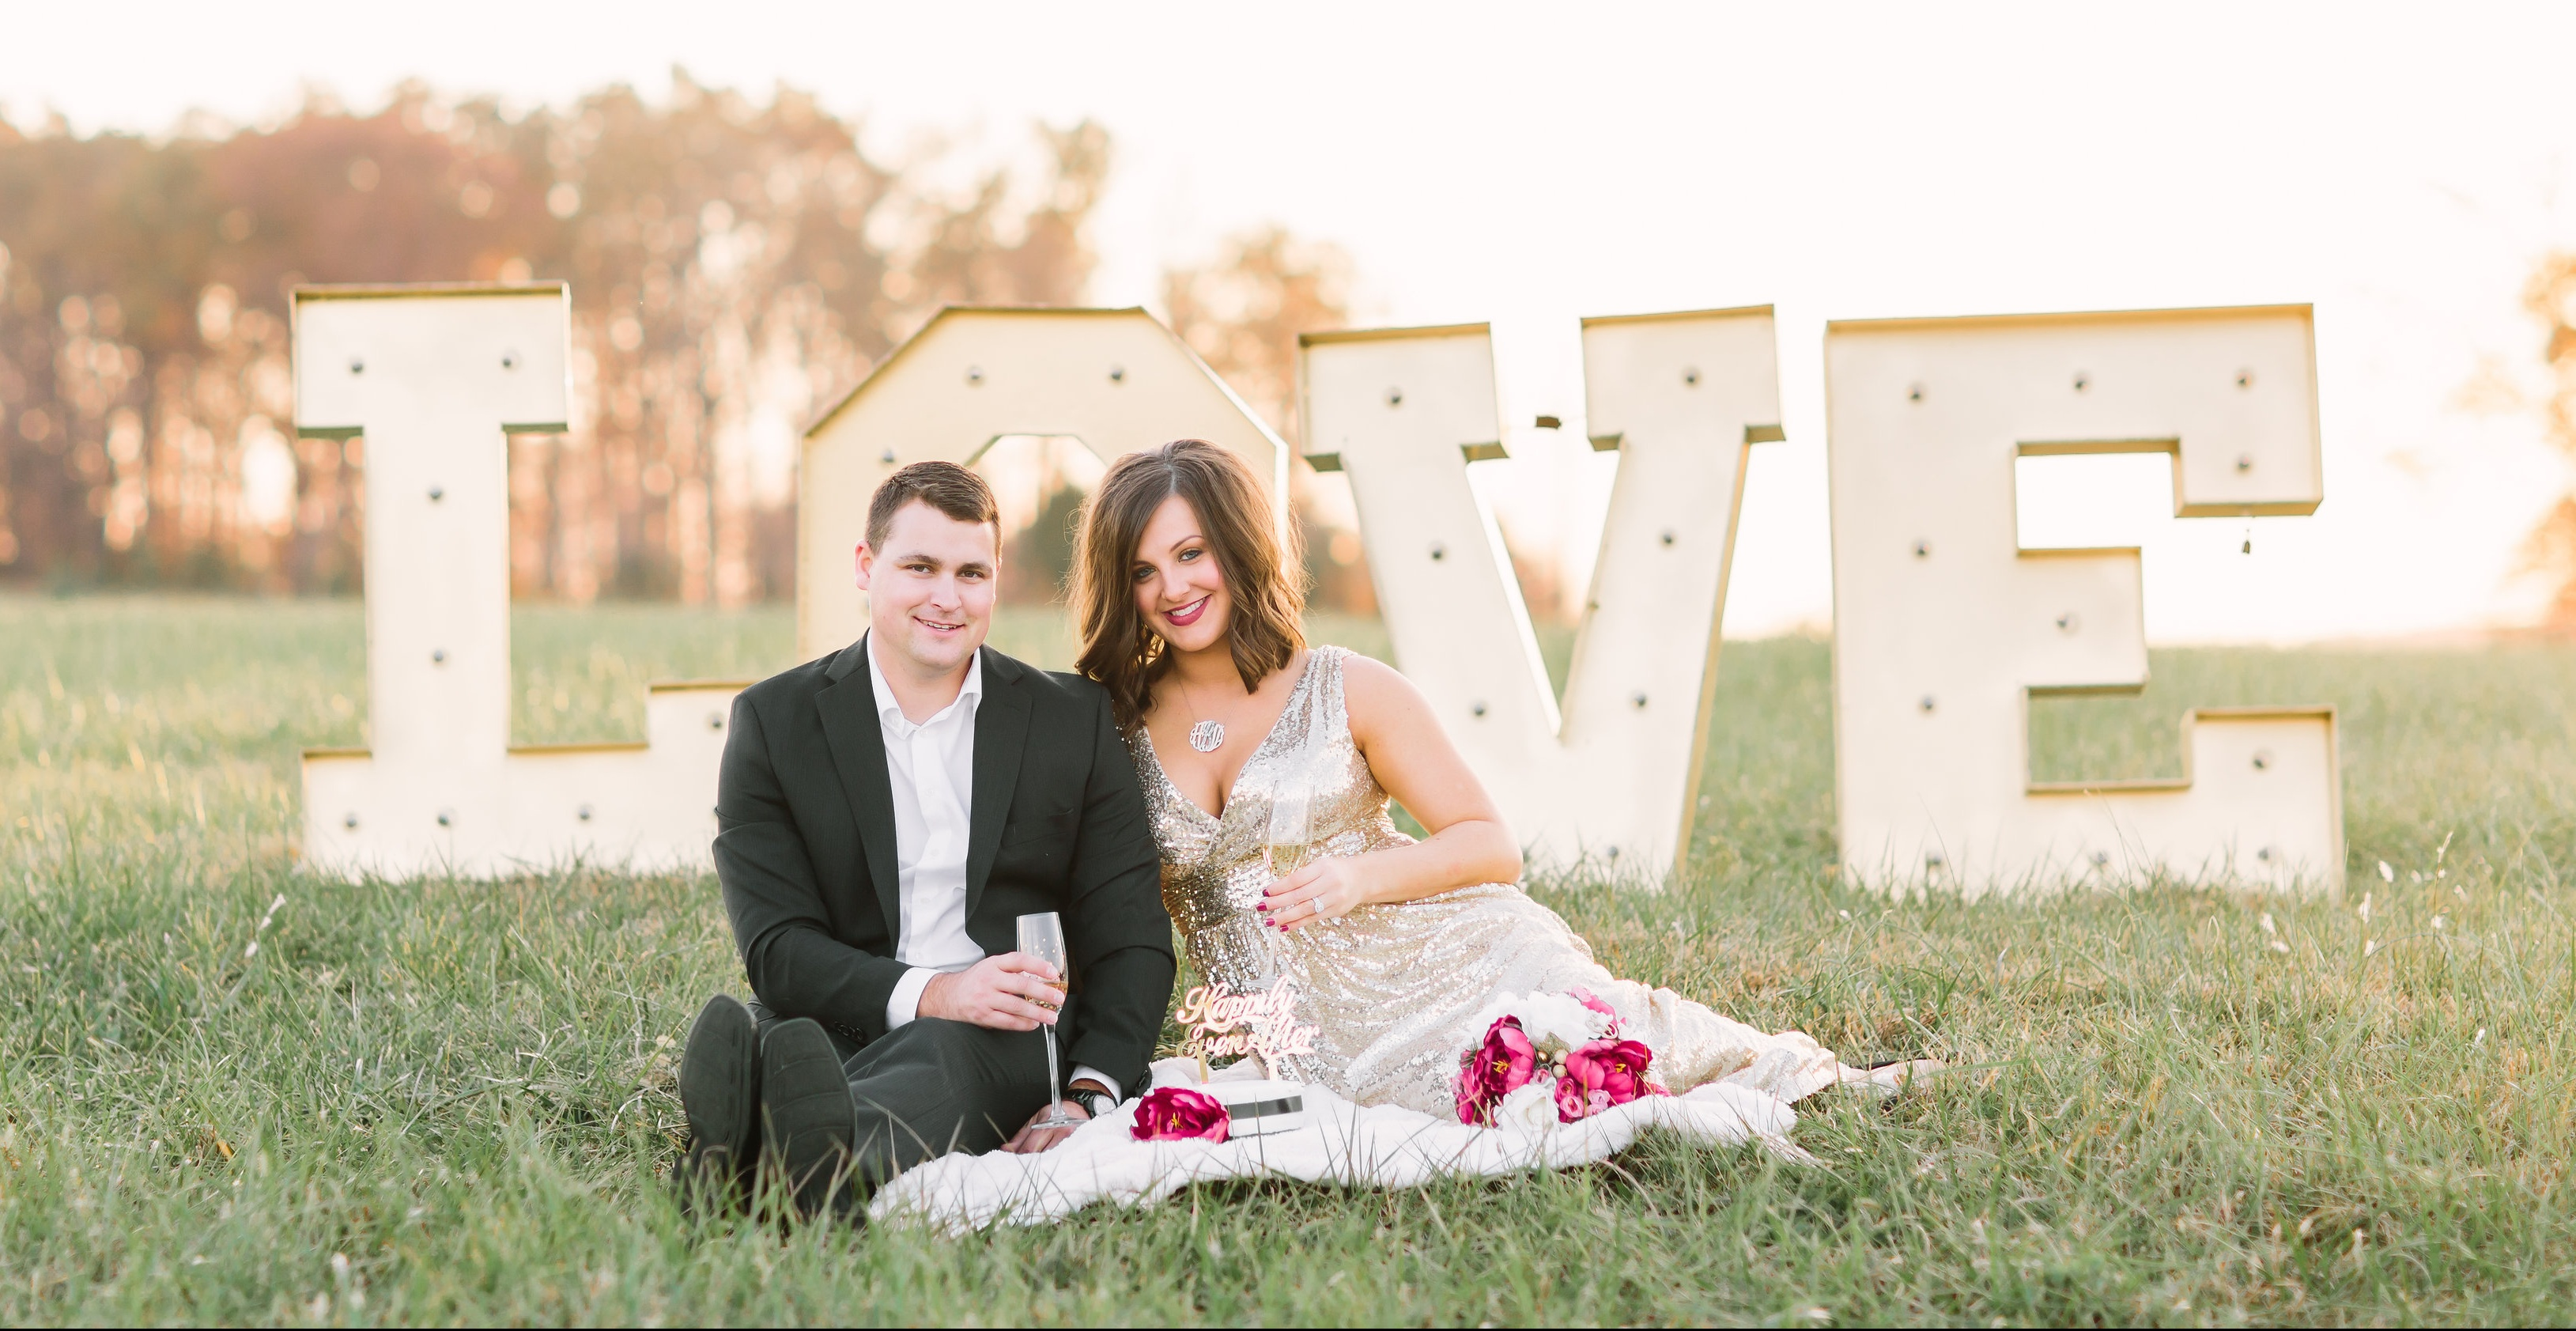 Kentucky Bride | New Year's 1st Anniversary Feature